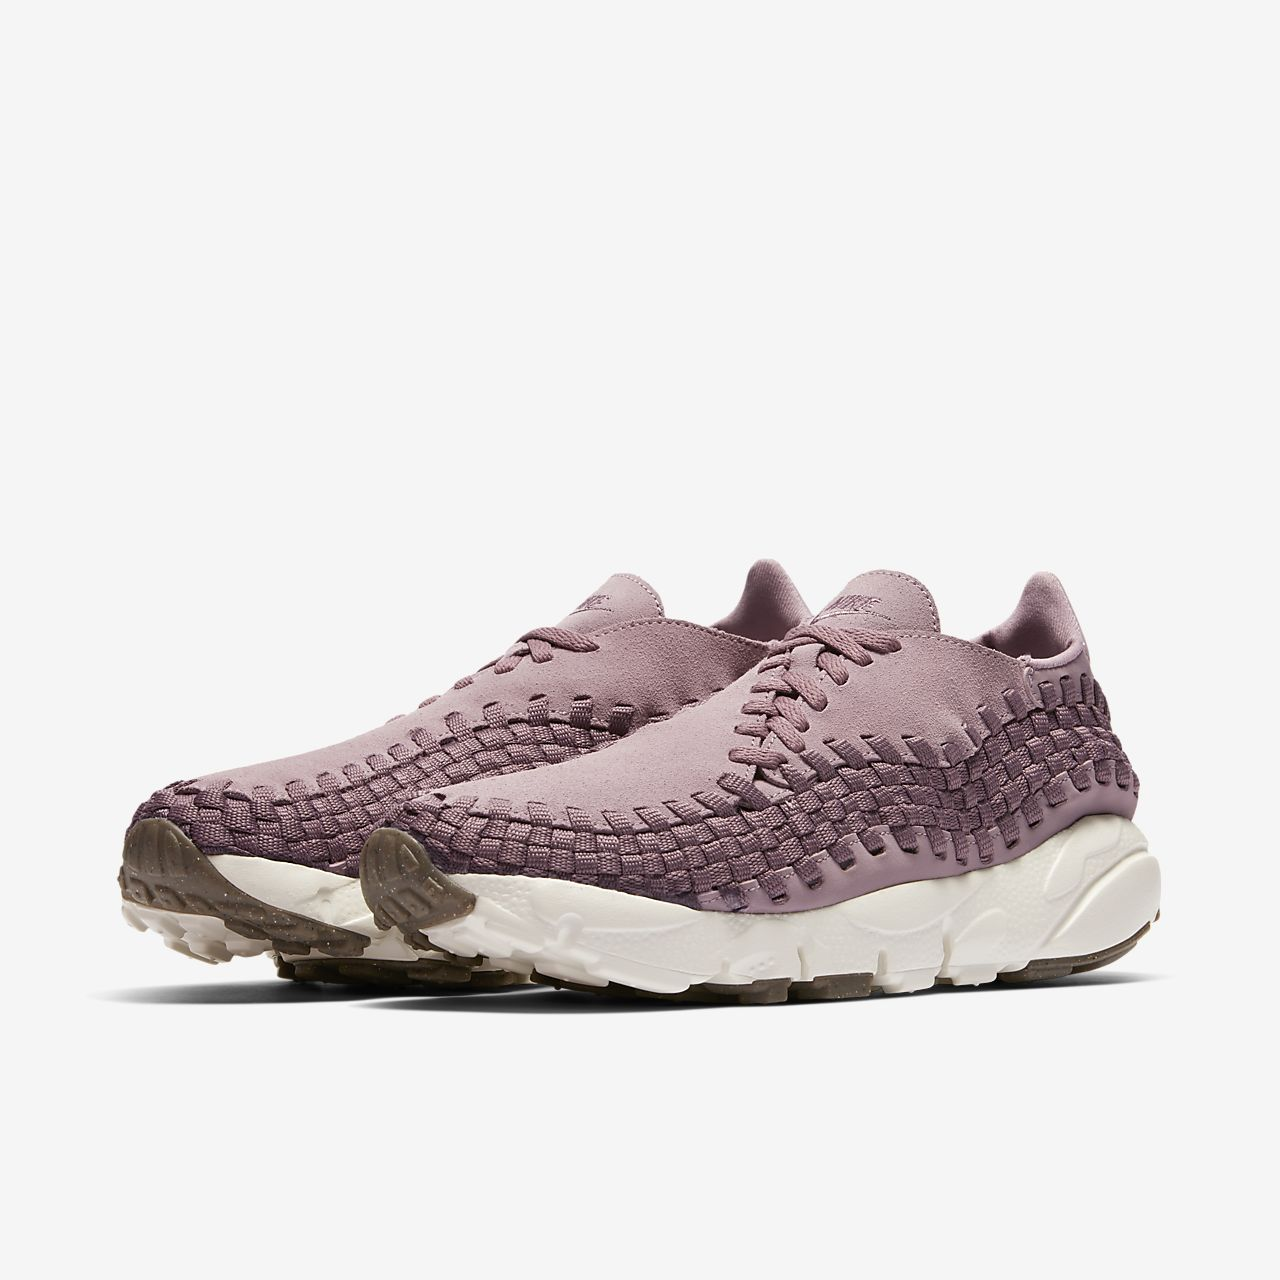 Nike Air Footscape Woven Damenschuh - Pink vGW2G8